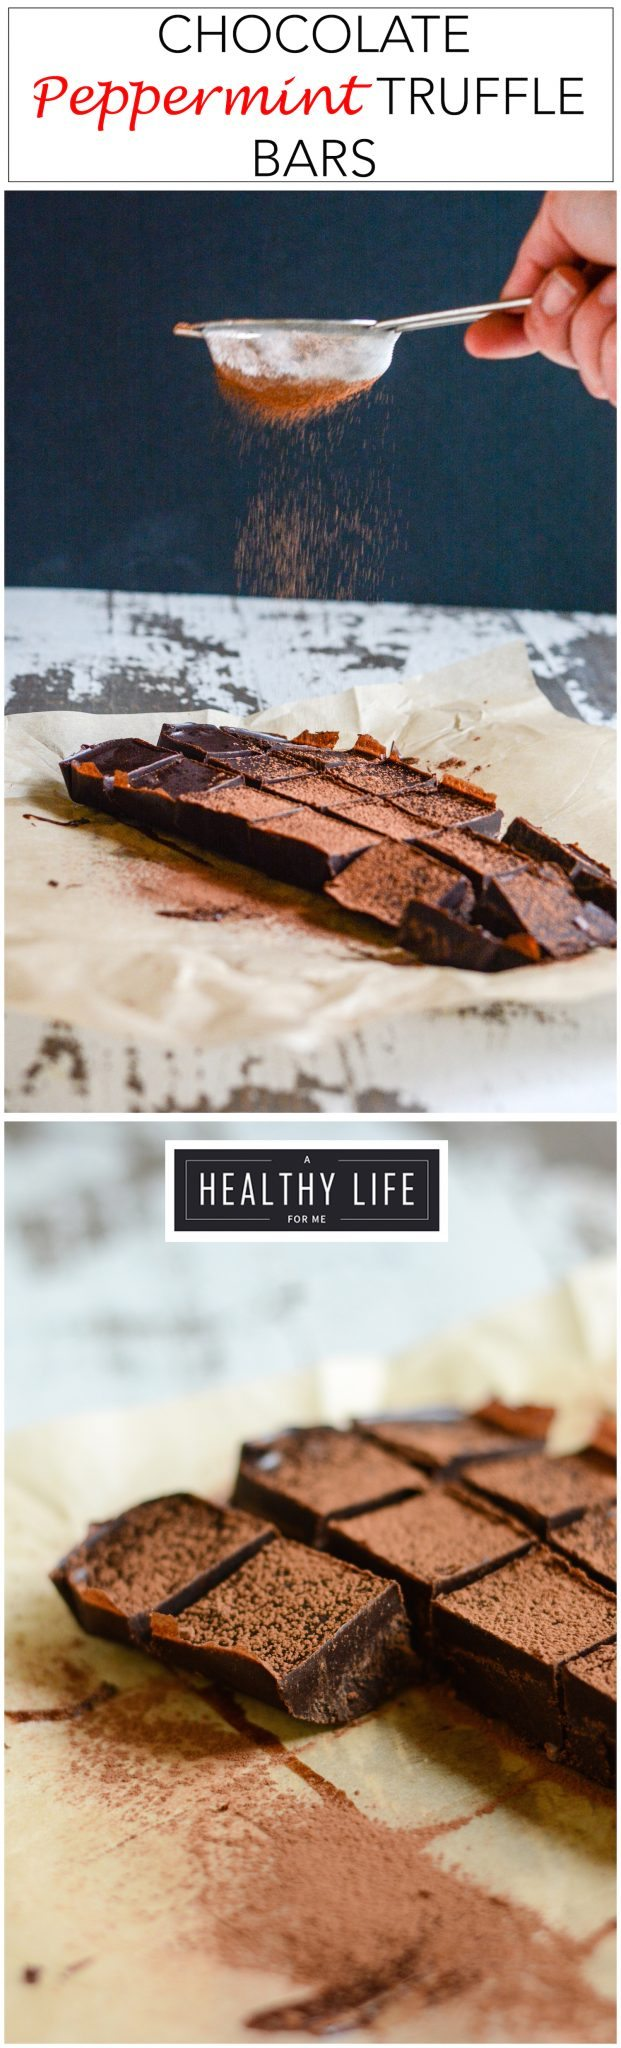 Chocolate Peppermint Truffle Bars are the perfect no bake gluten free easy to make holiday treat and a great way to celebrate the holidays | ahealthylifeforme.com